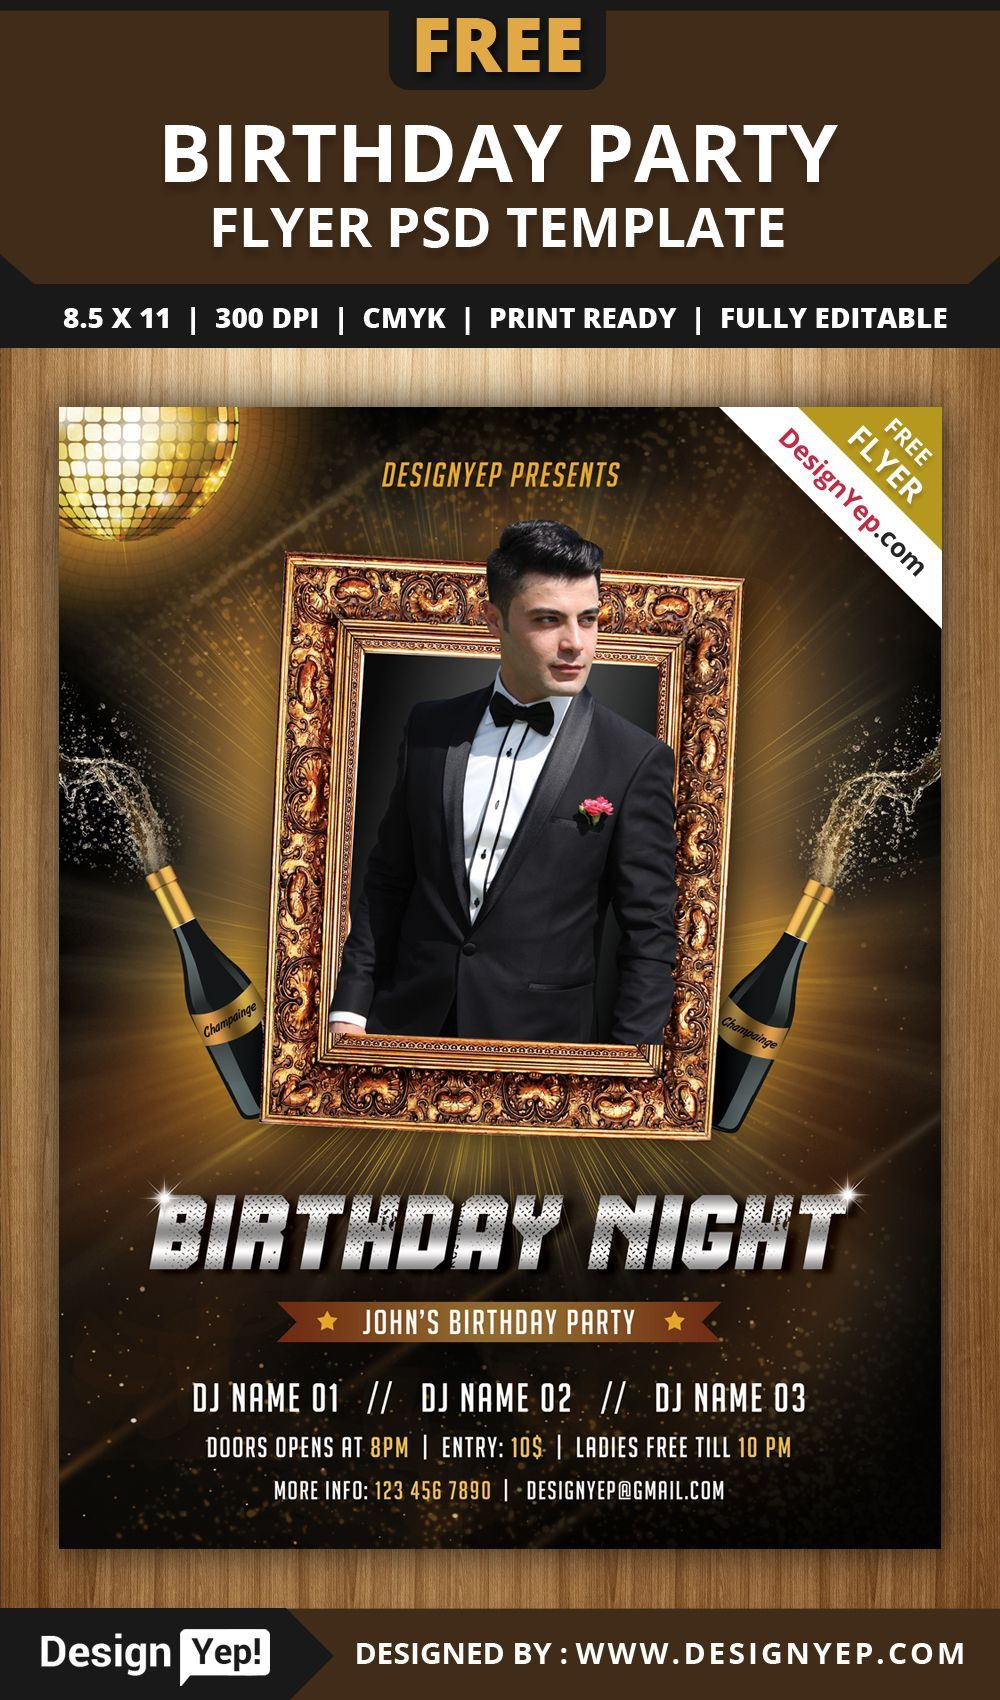 002 Exceptional Birthday Party Invitation Flyer Template Free Download Picture Full